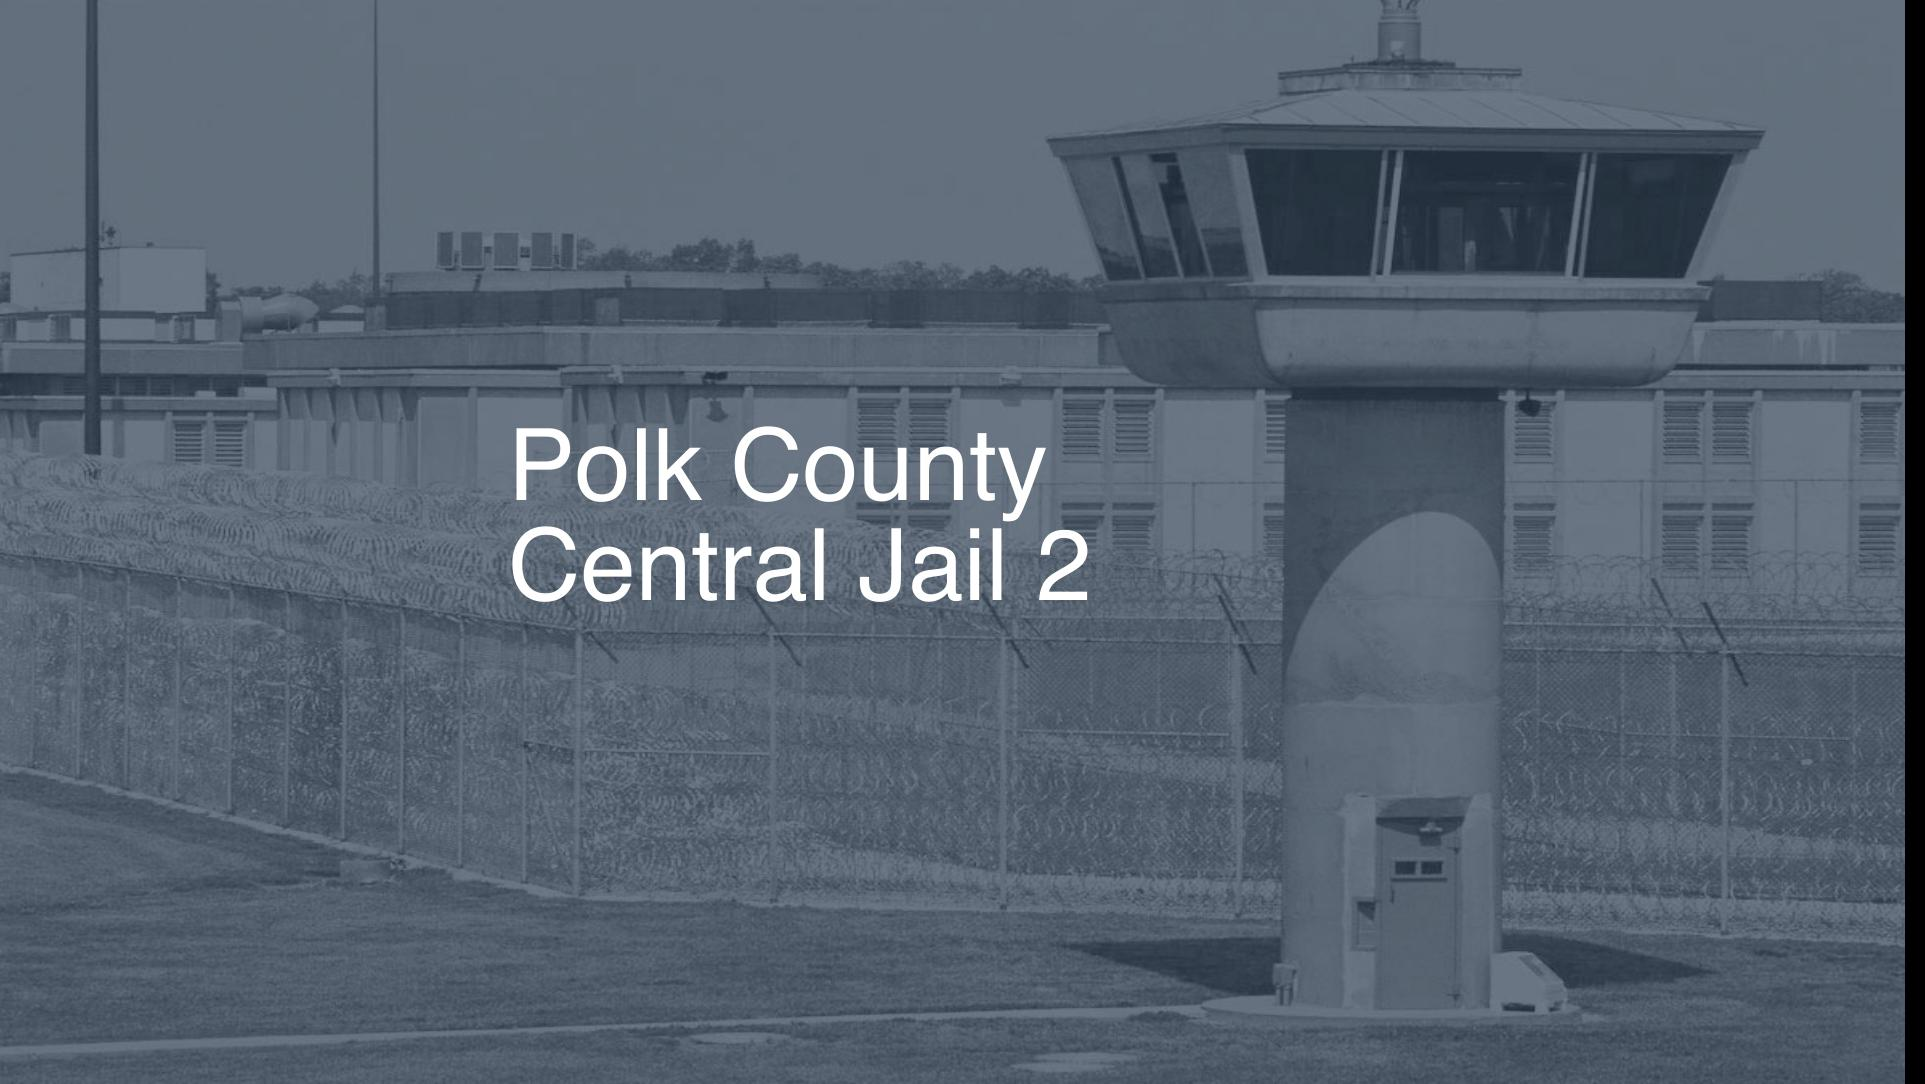 Polk County Central Jail correctional facility picture